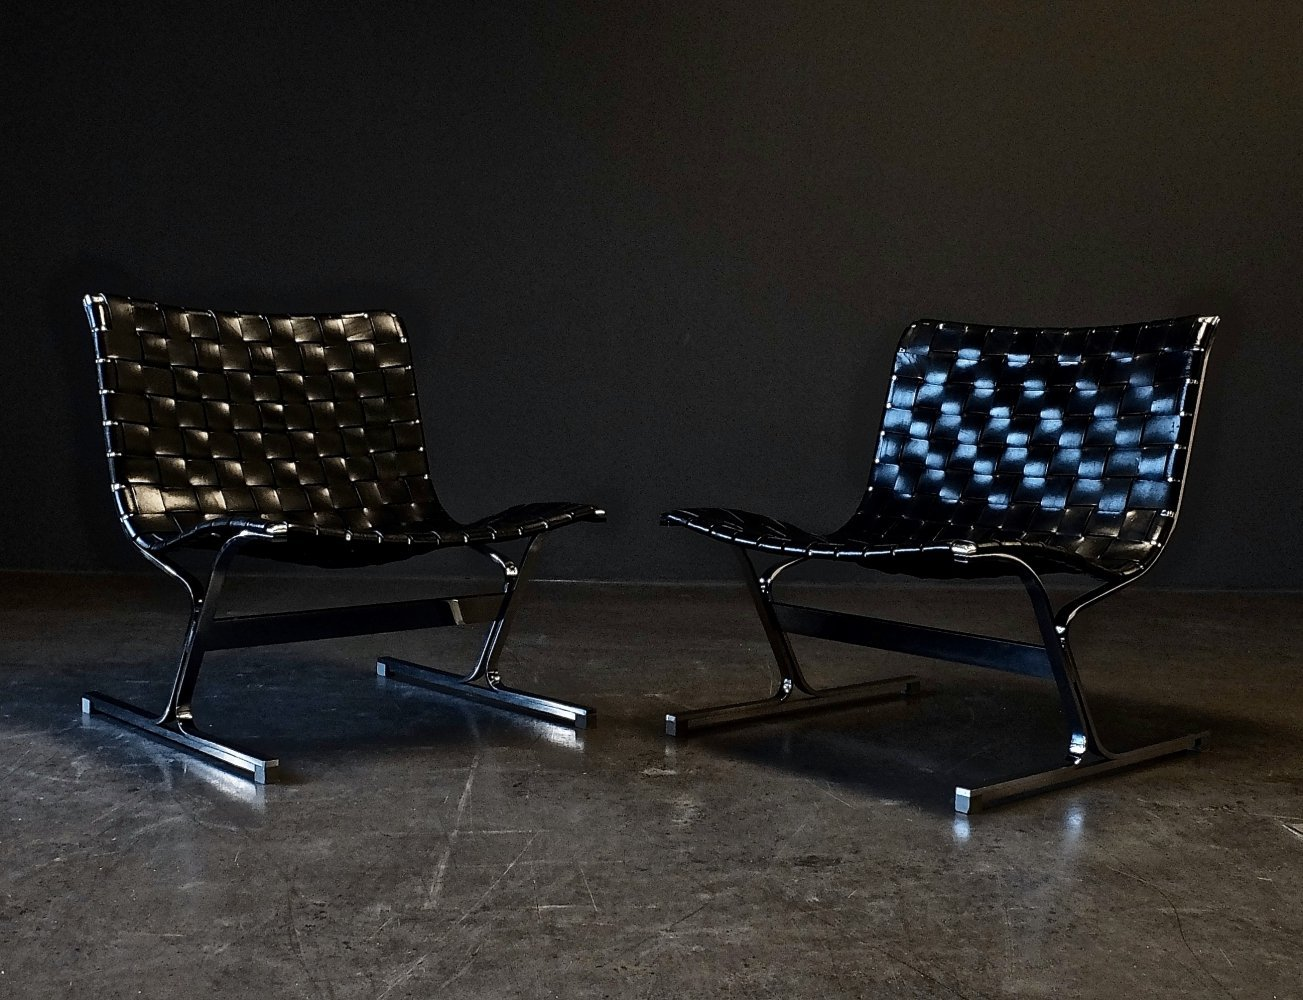 Pair of PLR 1 lounge chairs by Ross Littell for Herman Miller, 1960s